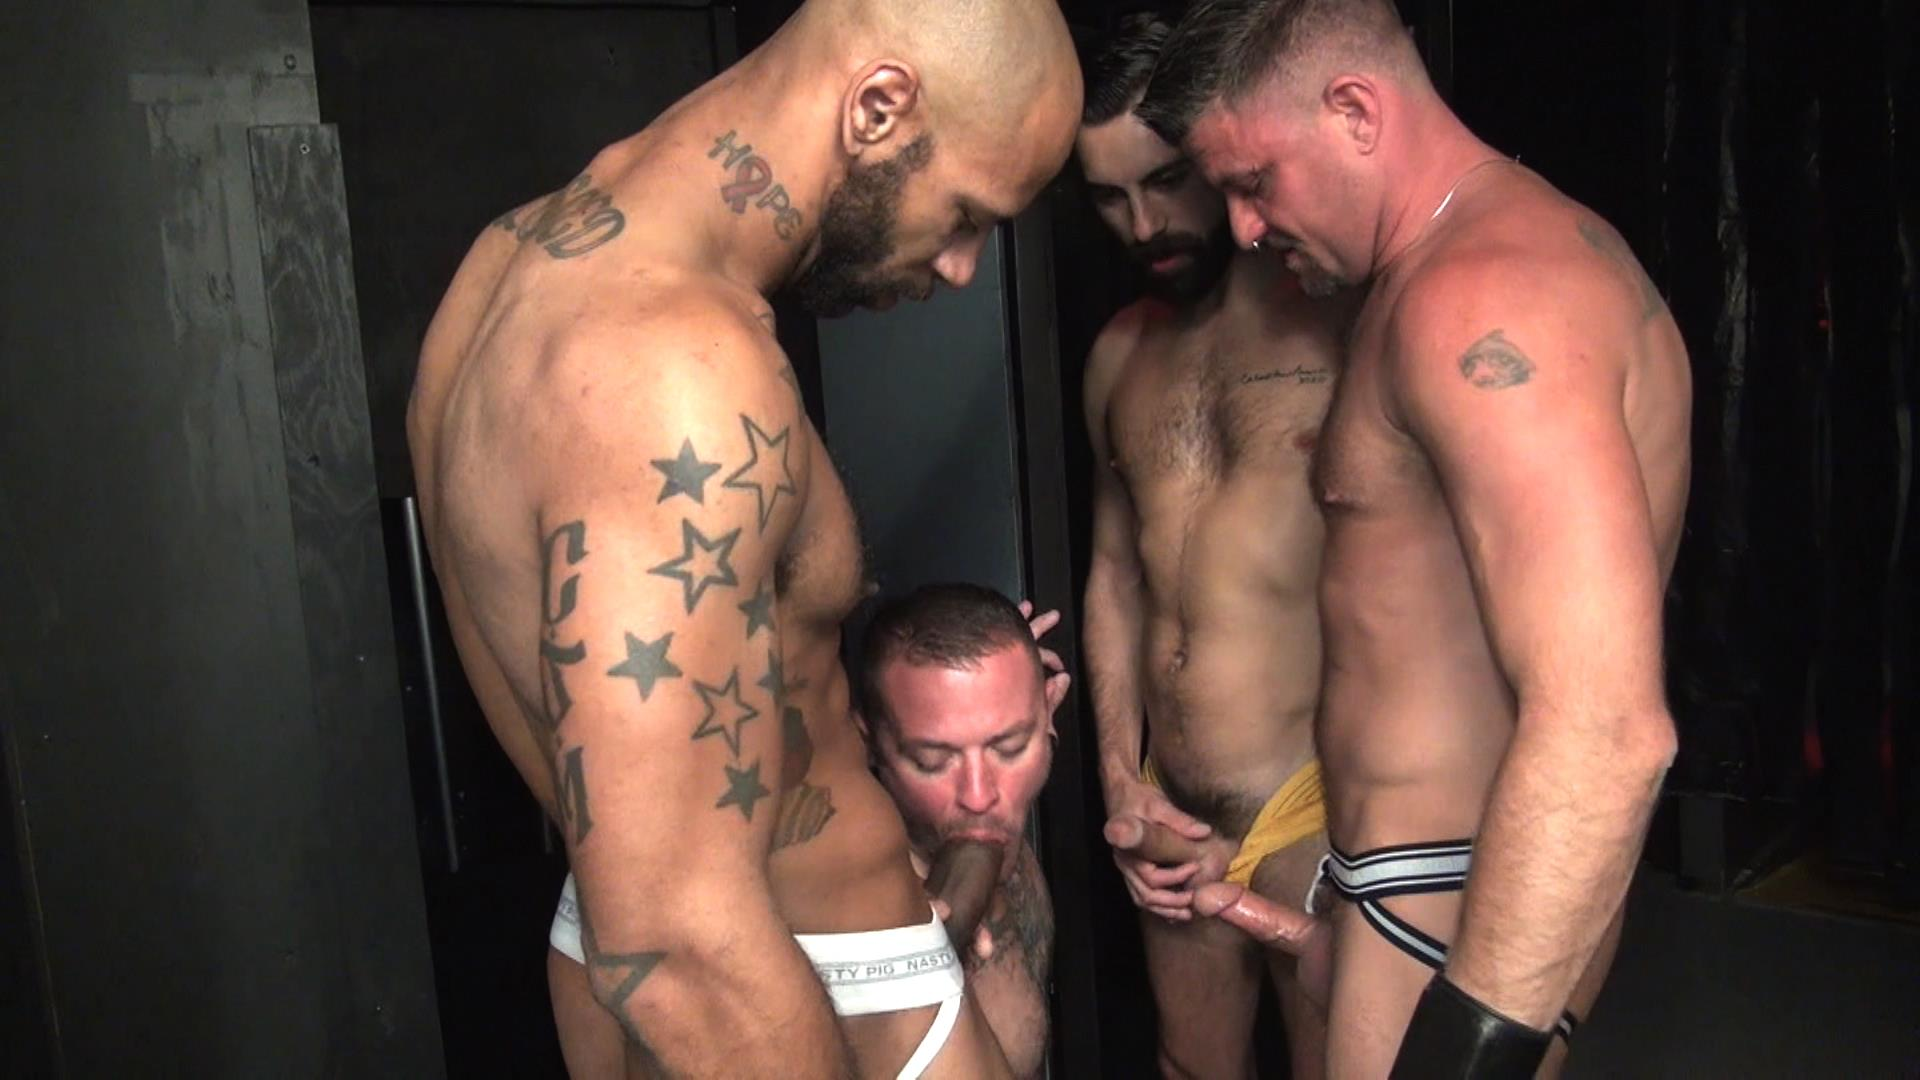 Raw-Fuck-Club-Raw-Fuck-Club-Max-Cameron-and-Christian-Matthews-and-Kory-Mitchel-and-Dean-Brody-Bareback-Bathhouse-Amateur-Gay-Porn-4 Four Way Bareback Fucking And Cum Fest At The Bathhouse